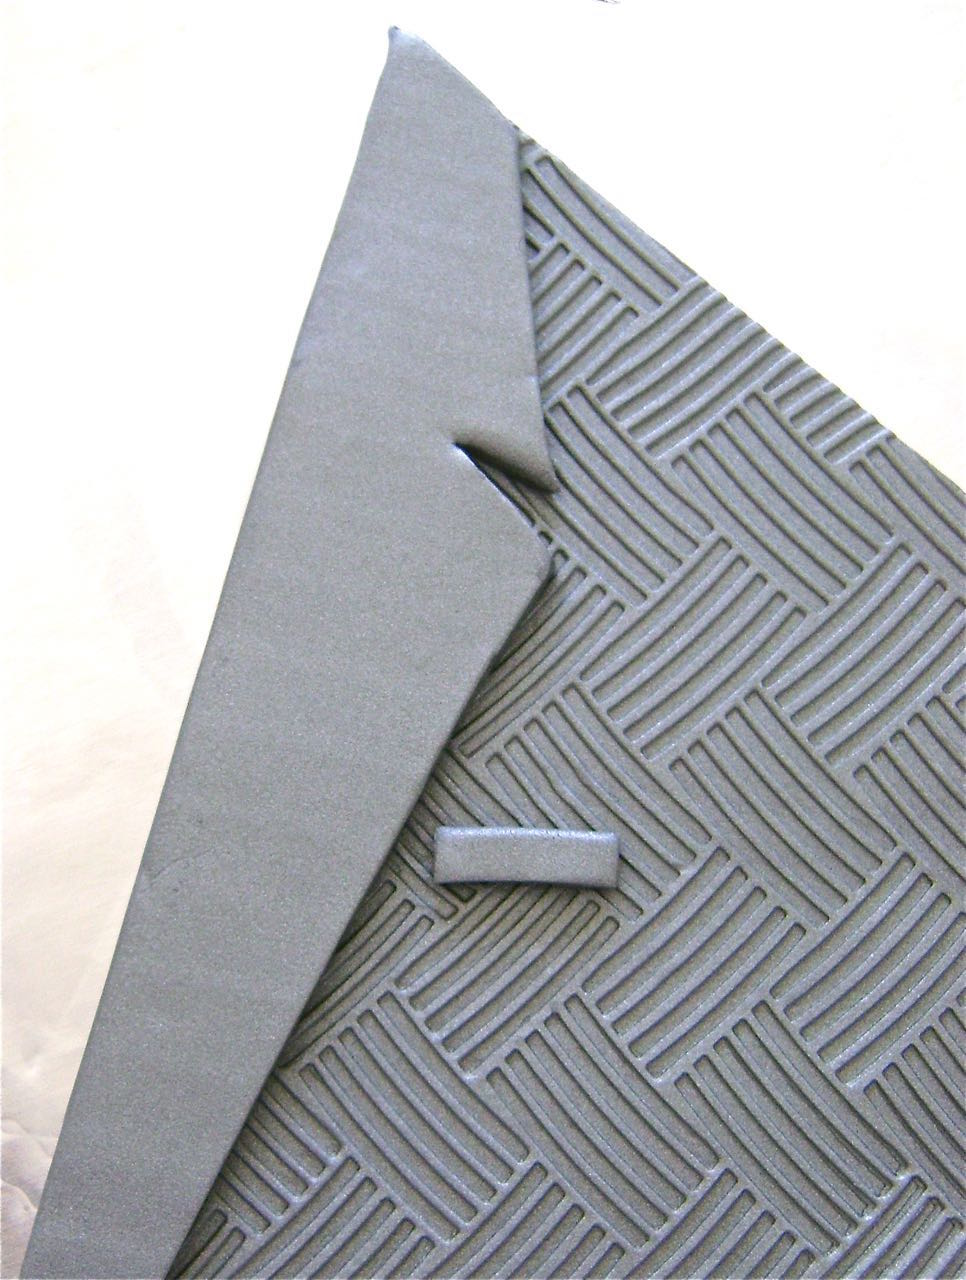 step 12 - Cut the card stock lapel away from the sconce template. Use it as a guide to cut out two clay lapels. Do not arrange the lapels on the sconce yet. Cut a half inch long thin piece of clay for the breast pocket and press it in place.